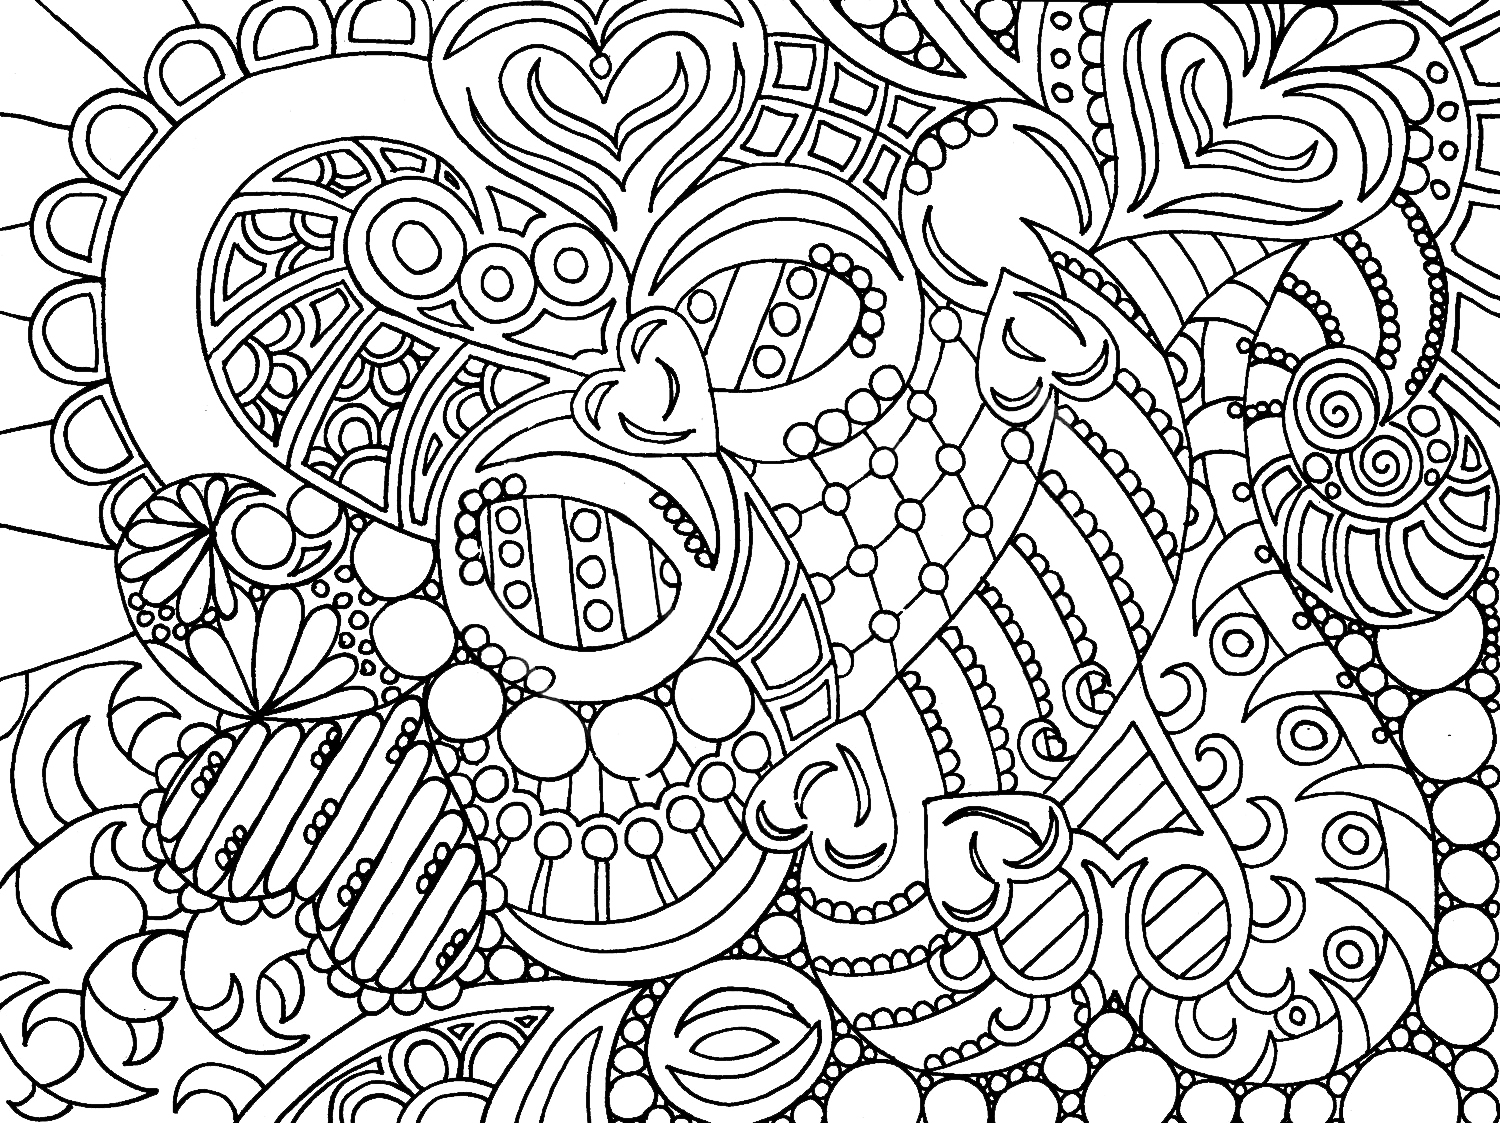 5 Images of Coloring For Adults Printable